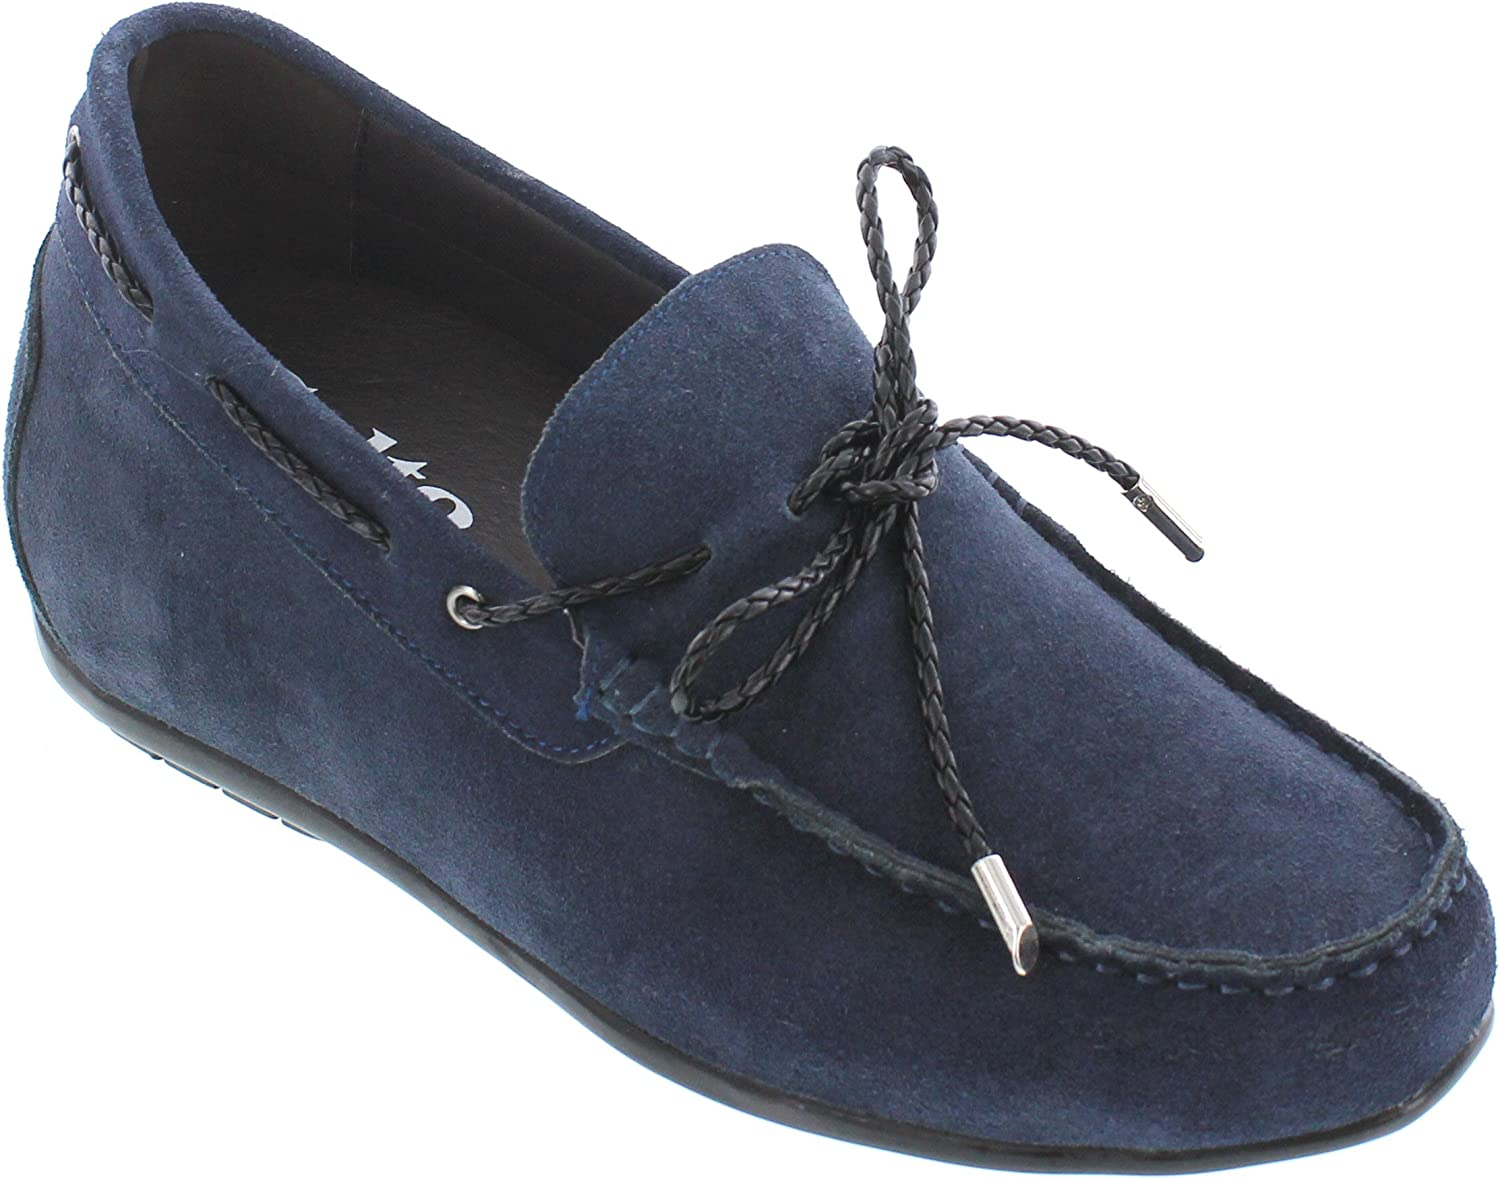 Leather Mac-Toe Slip-on Penny Loafers 3 Inches Taller CALTO Mens Invisible Height Increasing Elevator Shoes